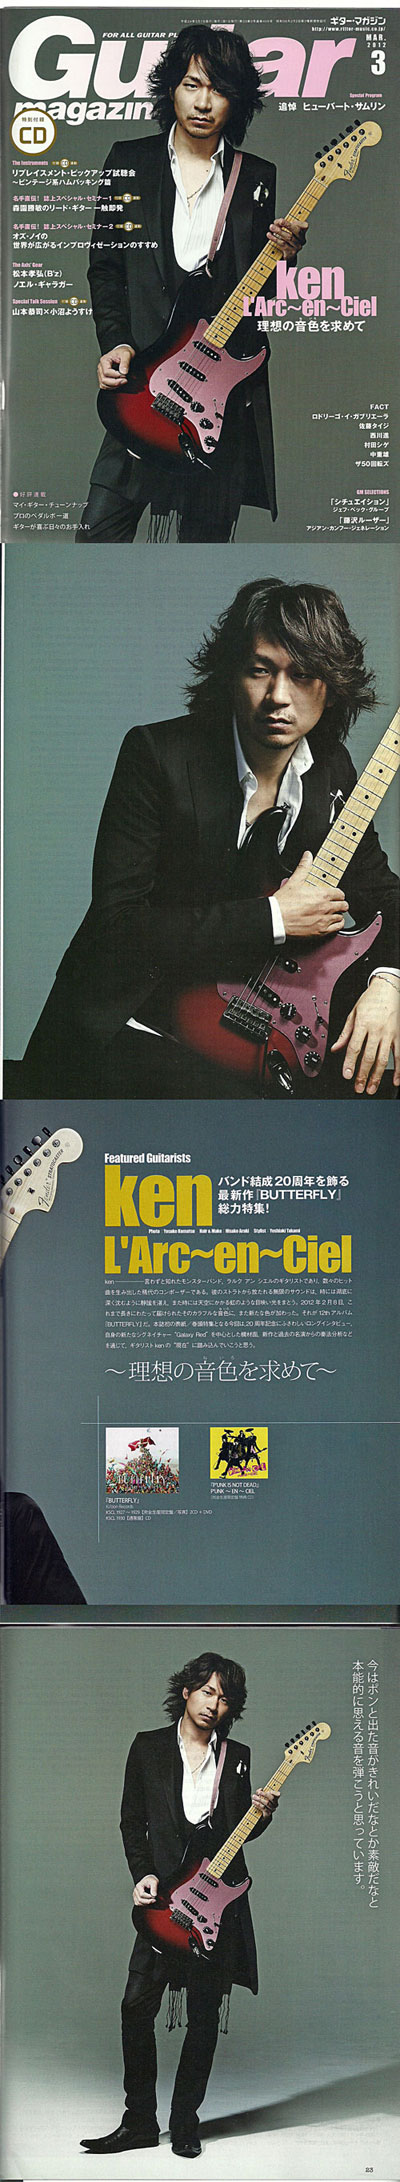 ken-guitar-magazine-2012MAR-01.jpg